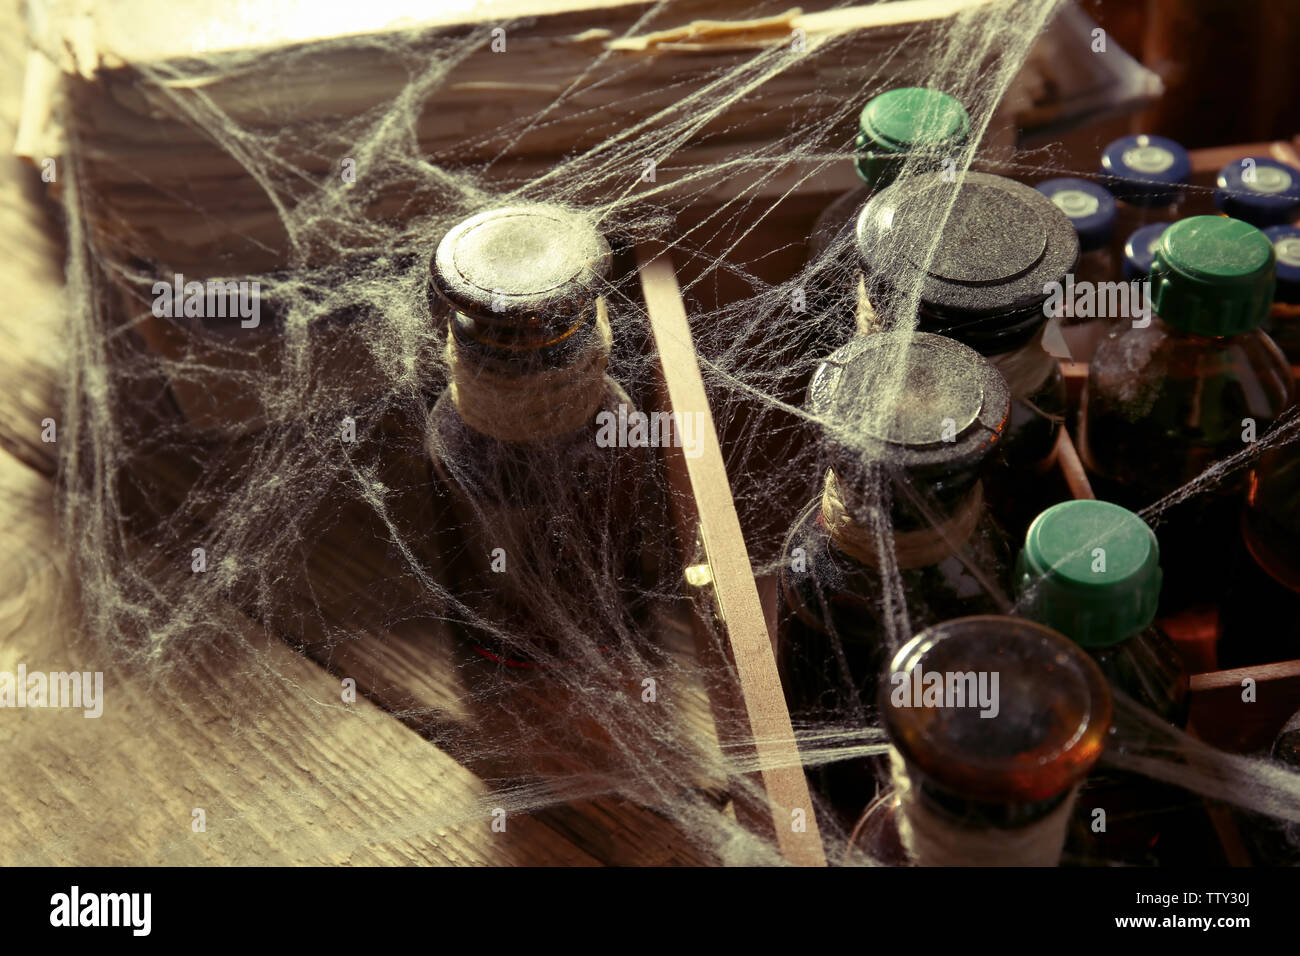 Vintage glass bottles with spiderweb, closeup - Stock Image